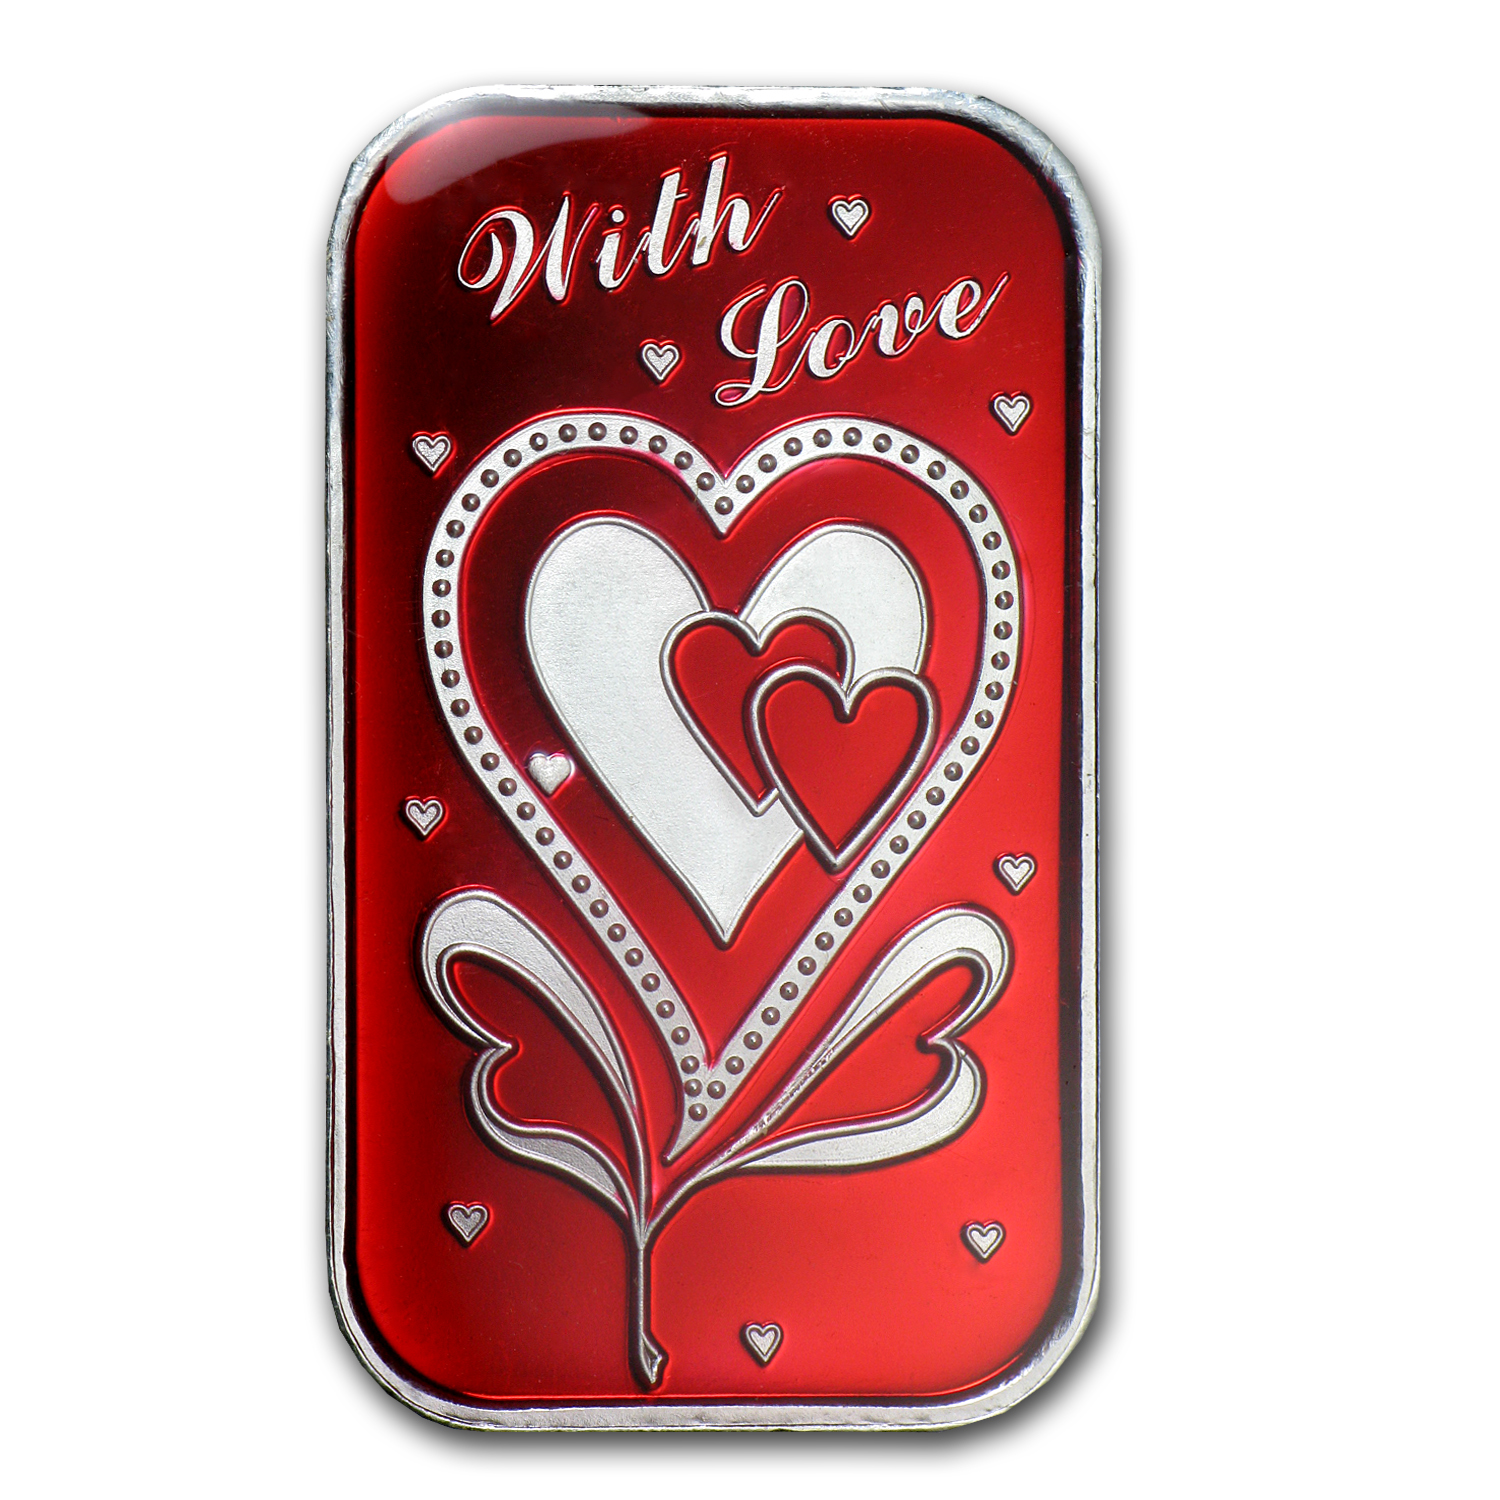 1 oz Silver Bar - With Love (Enameled, w/Box & Capsule)